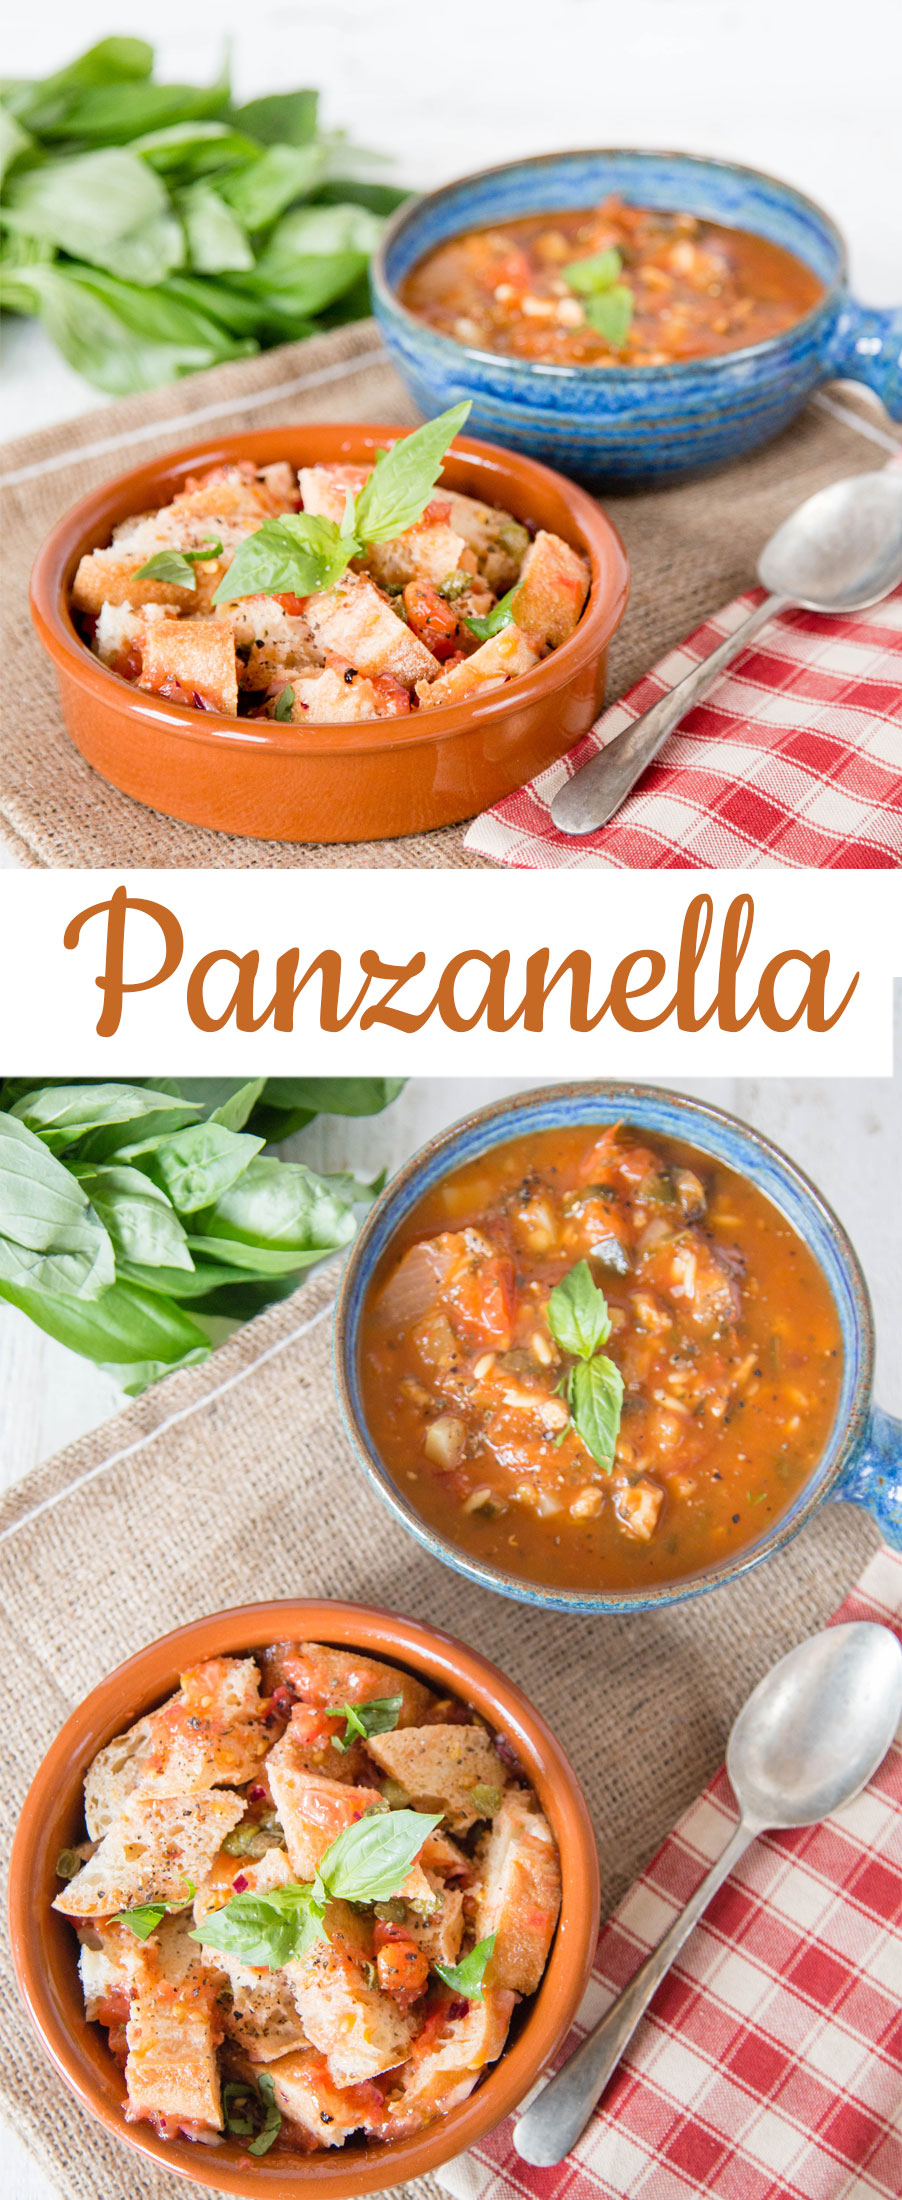 Panzanella - a simple frugal Tuscan dish that is astonishingly delicious.